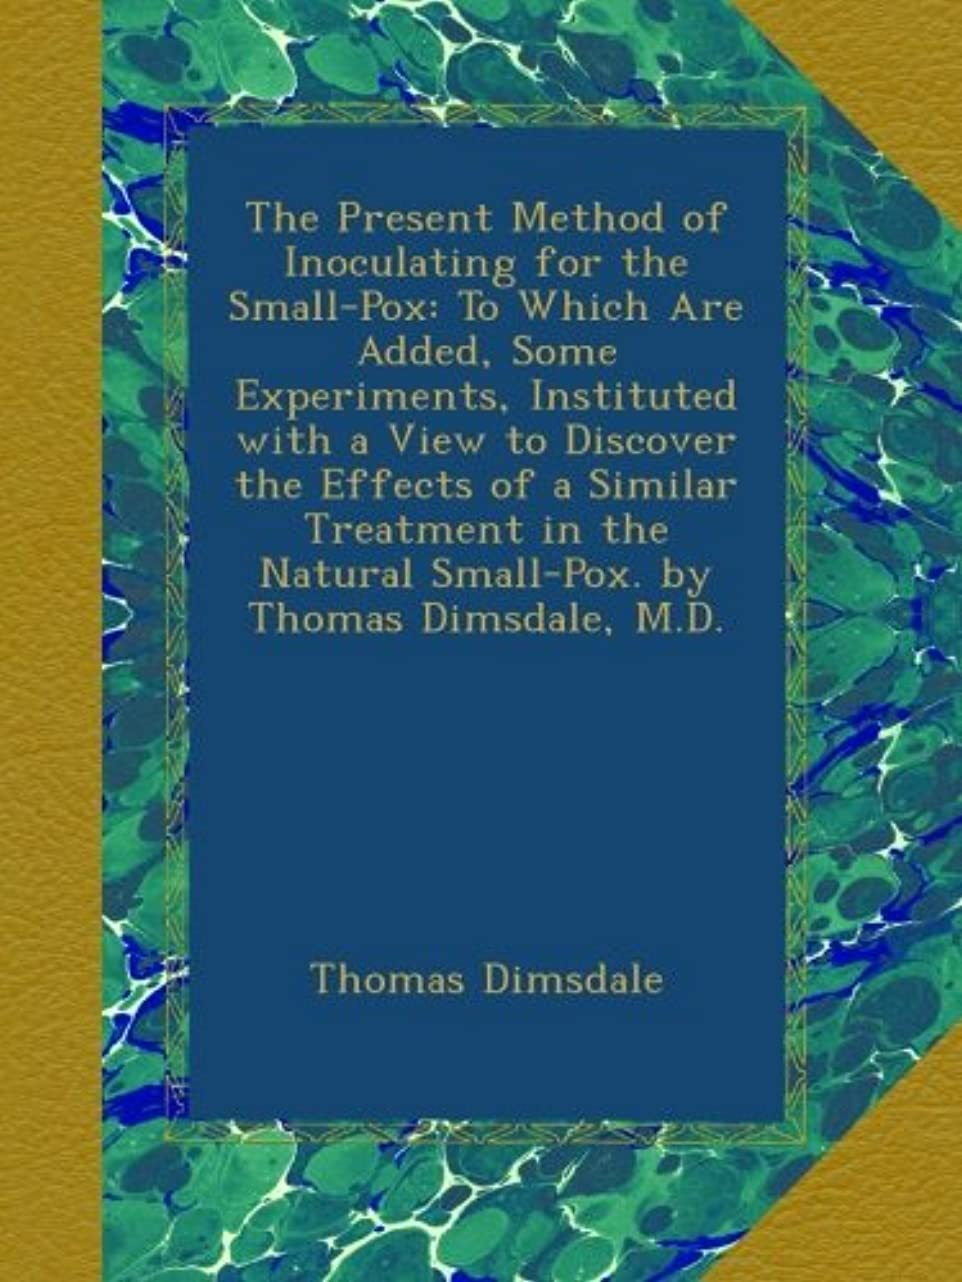 ワーカー五喪The Present Method of Inoculating for the Small-Pox: To Which Are Added, Some Experiments, Instituted with a View to Discover the Effects of a Similar Treatment in the Natural Small-Pox. by Thomas Dimsdale, M.D.